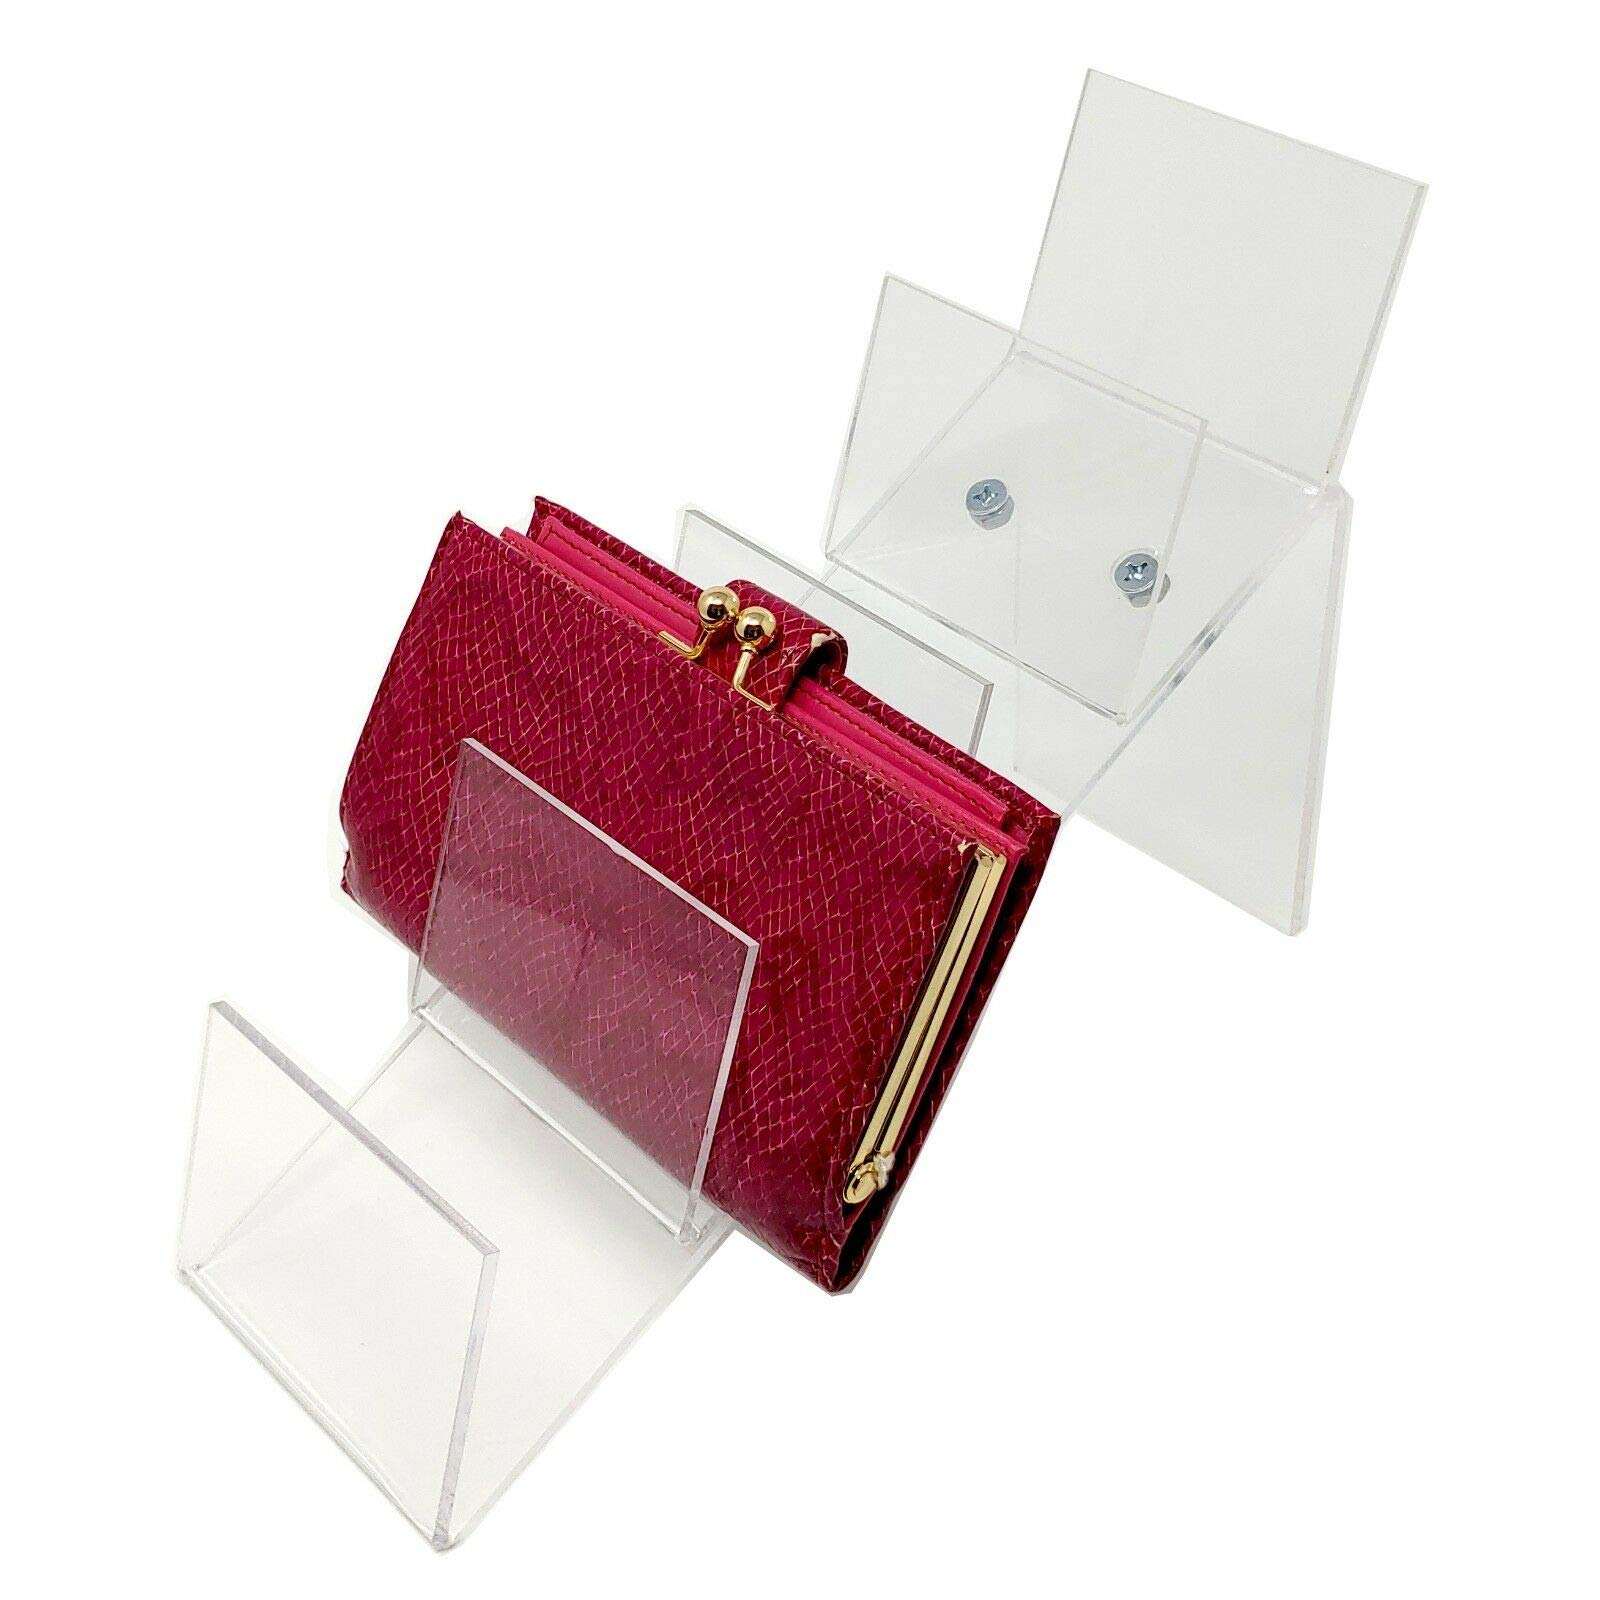 Acrylic Counter Top Clutch Handbag Holding Display for Retail, 7'' D x 5.5'' H x 4'' L, 10 Pack